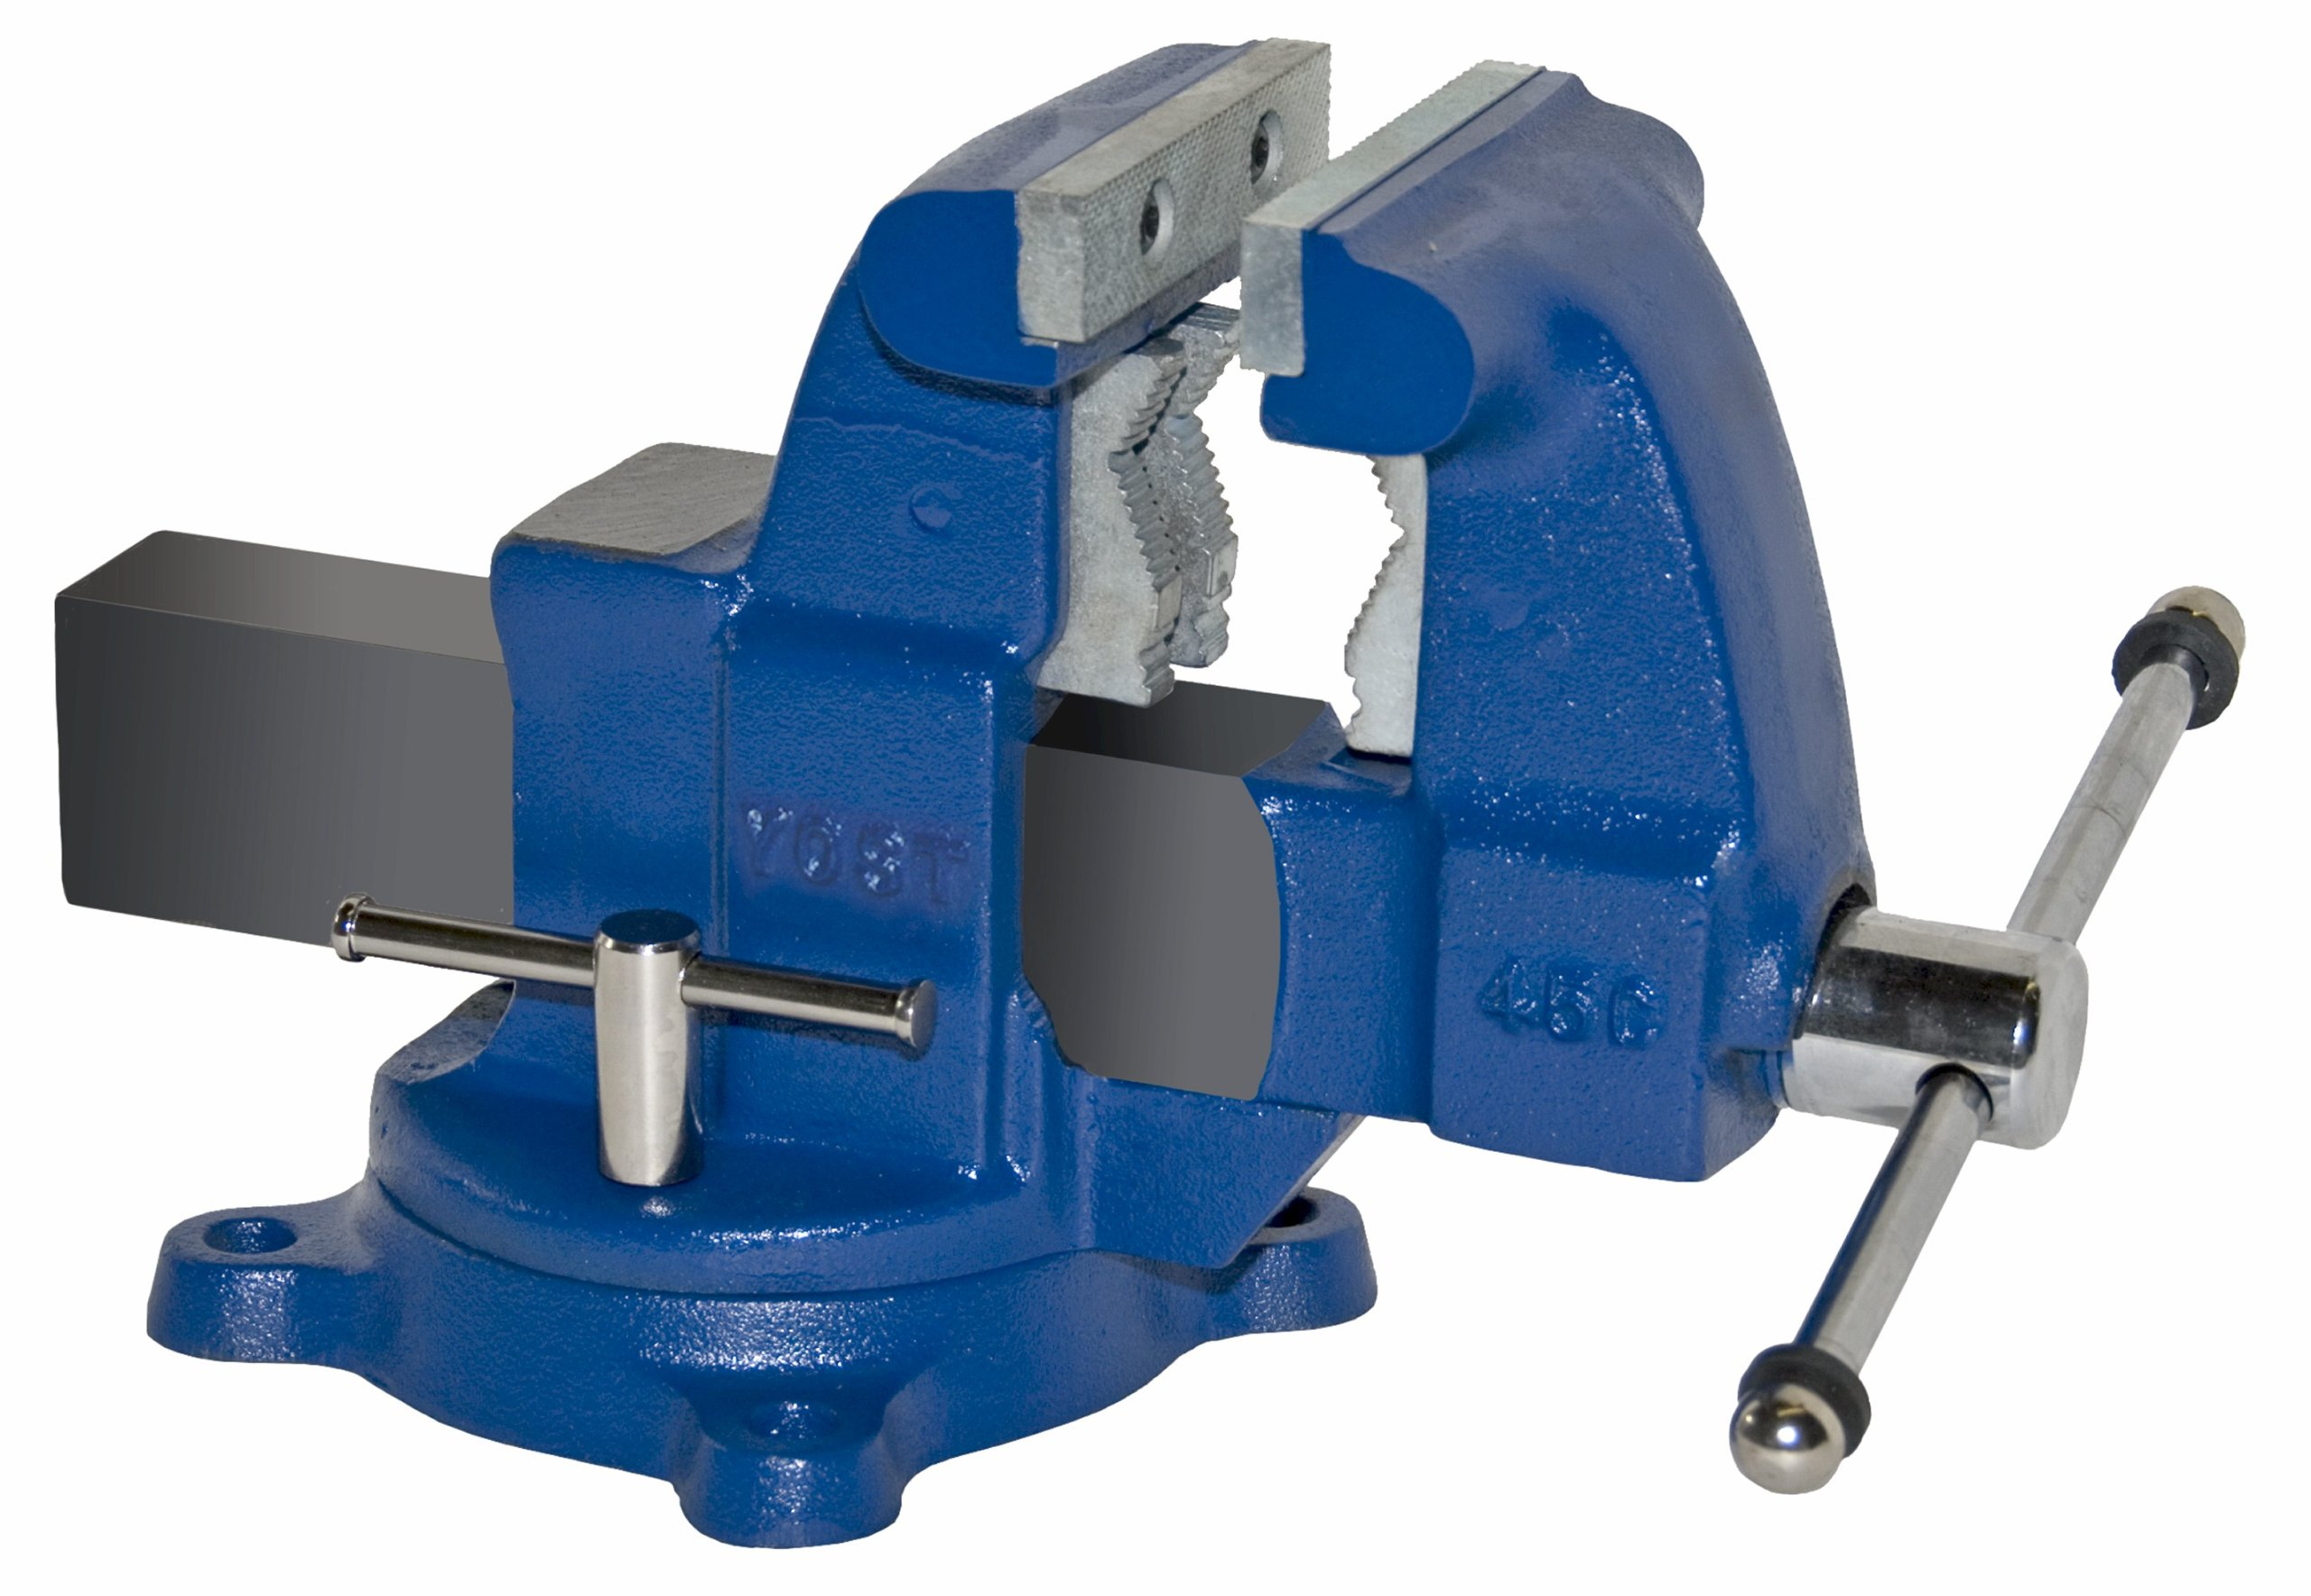 Yost Vises 45C 4.5'' Tradesman Series Industrial Grade  Bench Vise Made in USA by Yost Tools